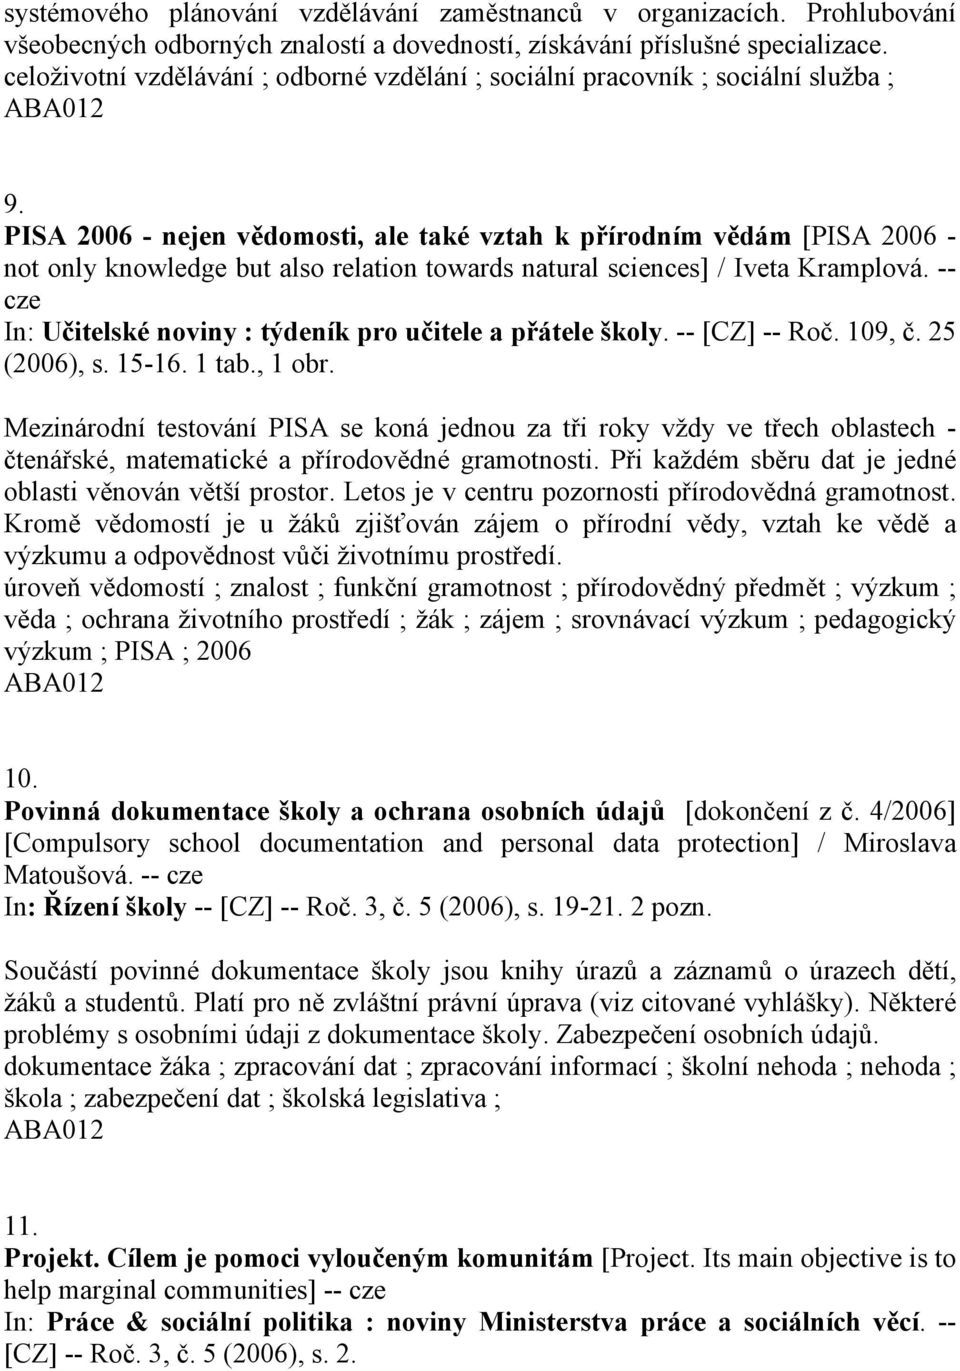 PISA 2006 - nejen vědomosti, ale také vztah k přírodním vědám [PISA 2006 - not only knowledge but also relation towards natural sciences] / Iveta Kramplová.